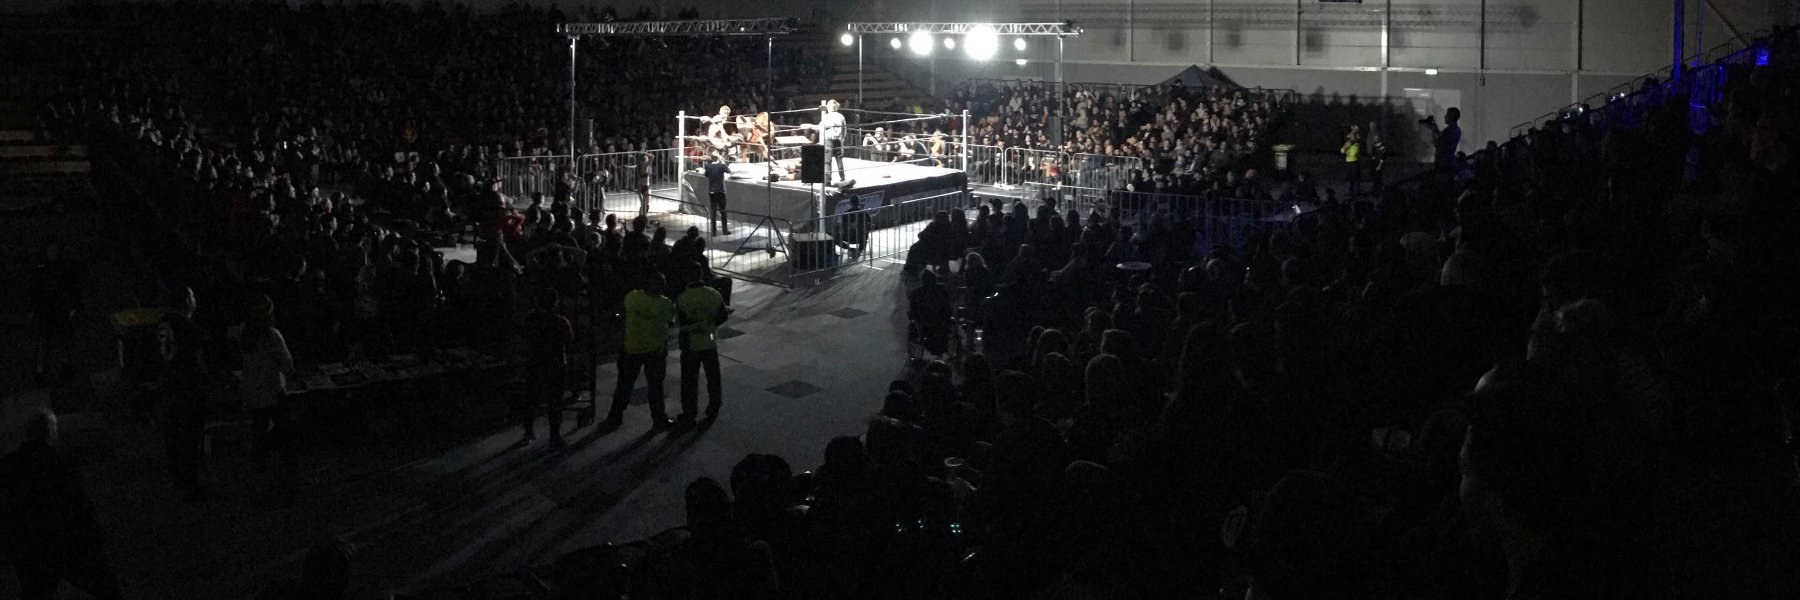 Bringing the very best in Australian Wrestling to the world